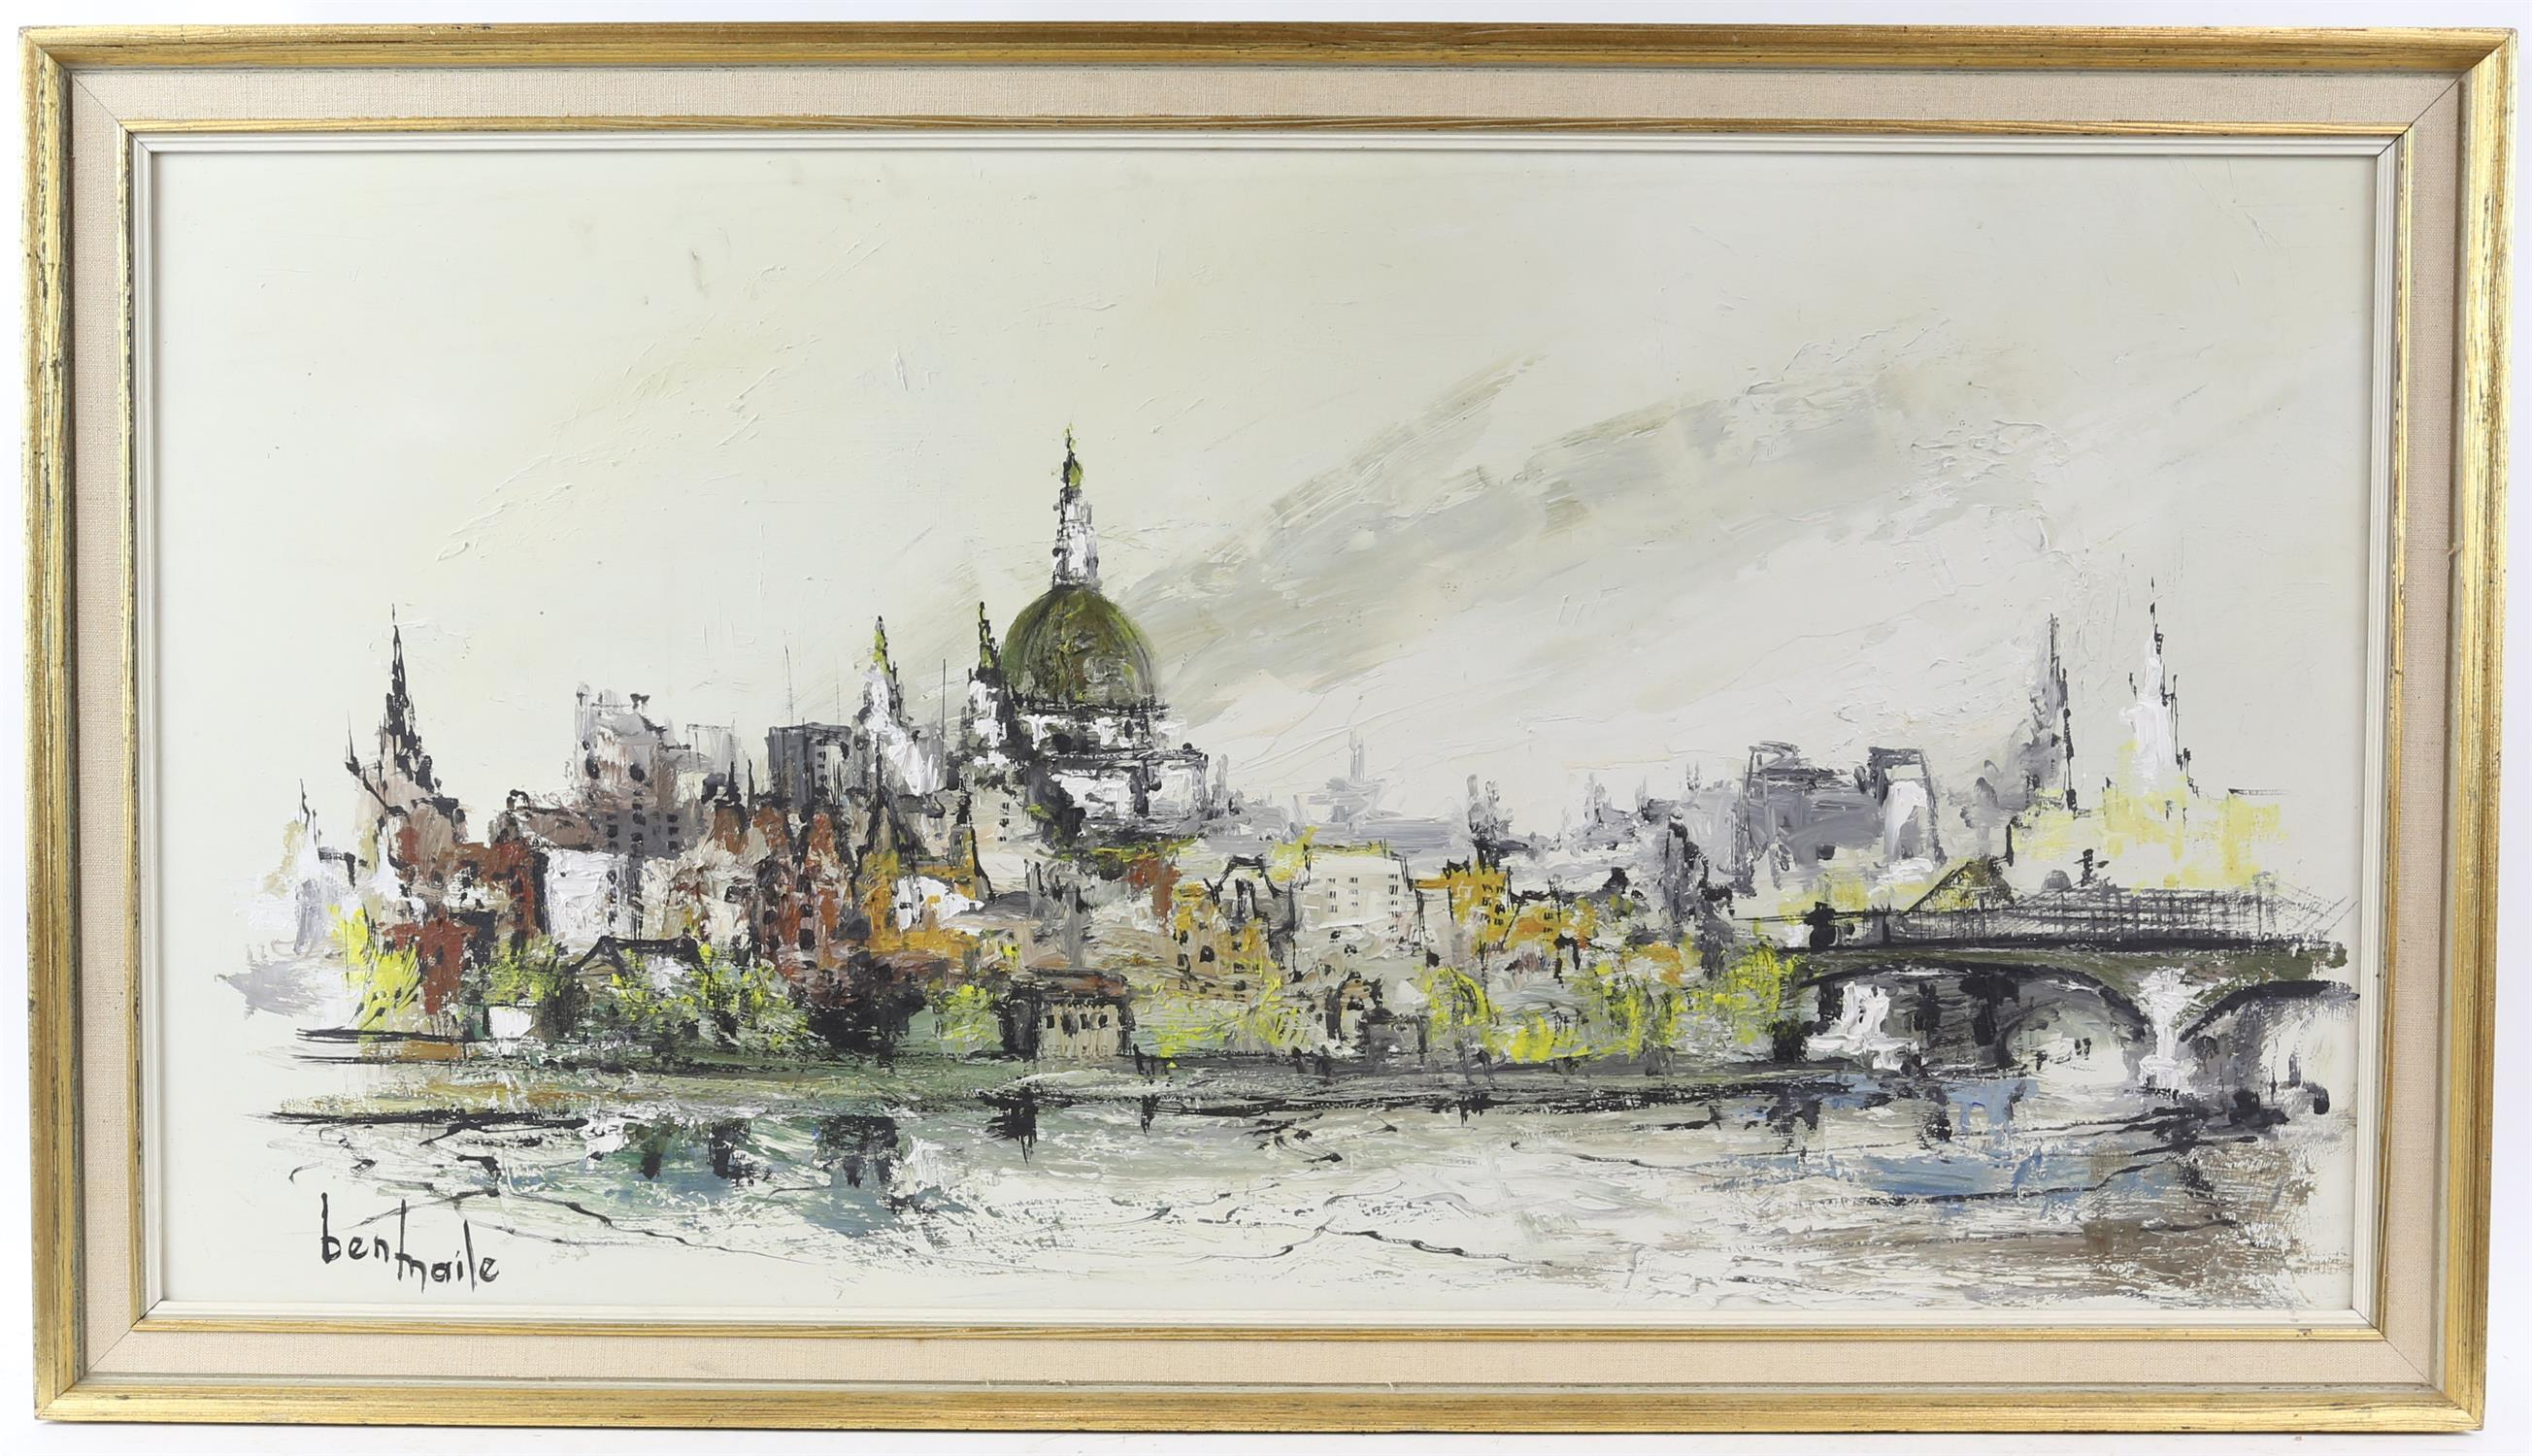 Ben Maile (British 1922-2017), 'St. Pauls from the Thames', signed, oil on board, 39 x 74.5cm, - Image 2 of 4